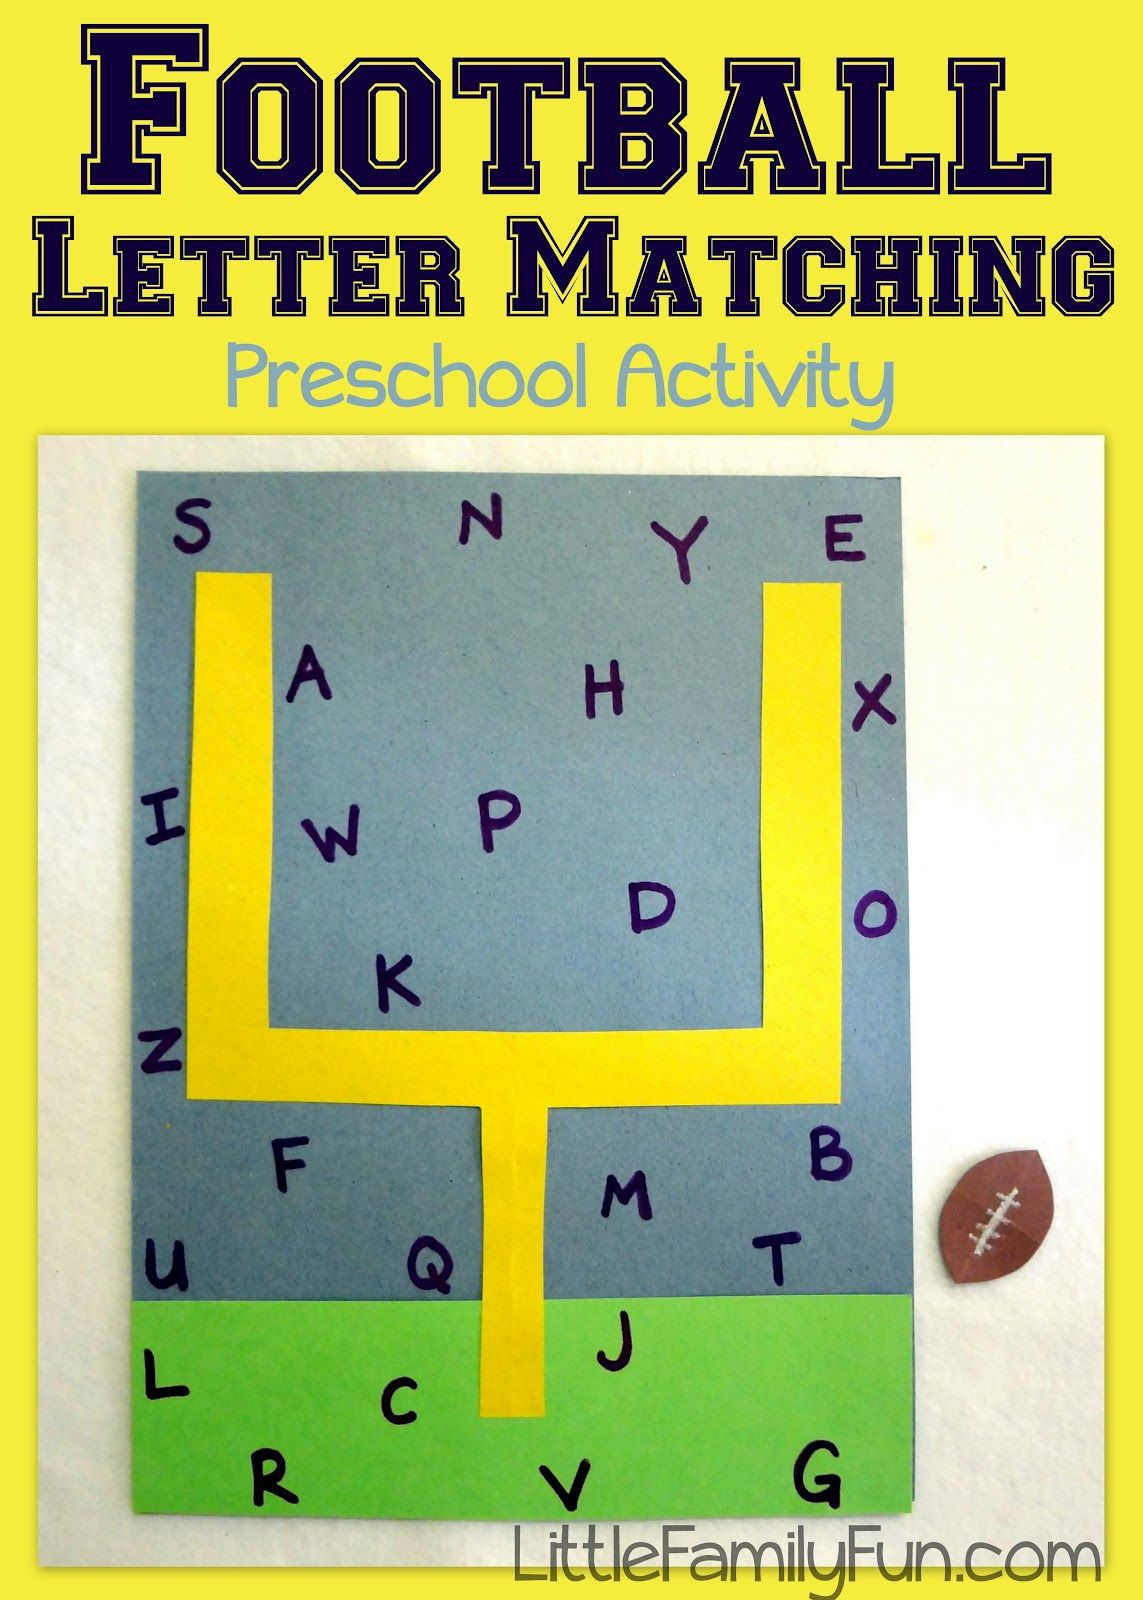 Little Family Fun Football Letter Game  Preschool Letters